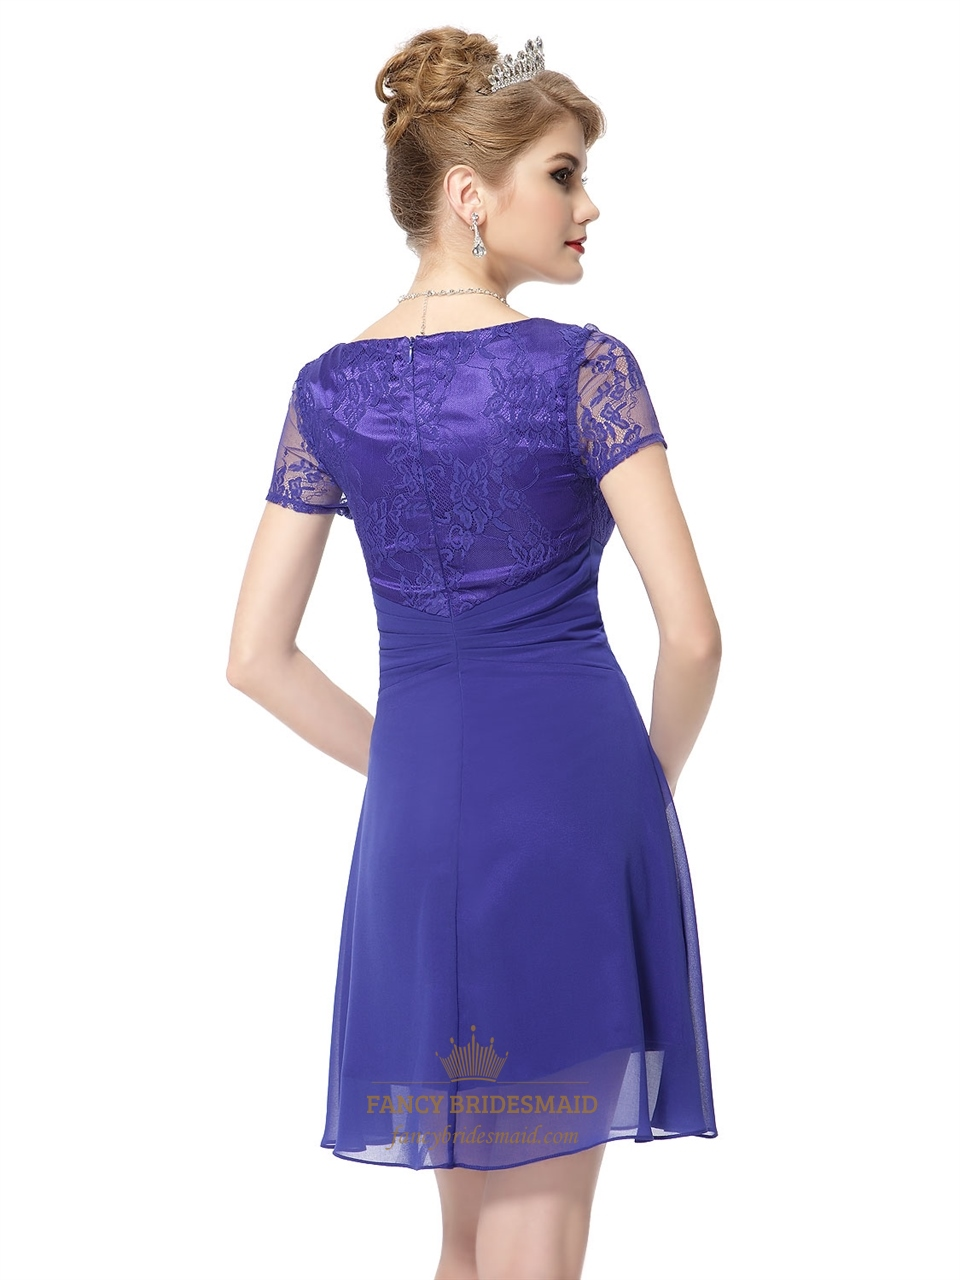 Blue Cap Sleeve Skater DressShort Blue Prom Dresses With Sleeves And Lace Overlay | Fancy ...